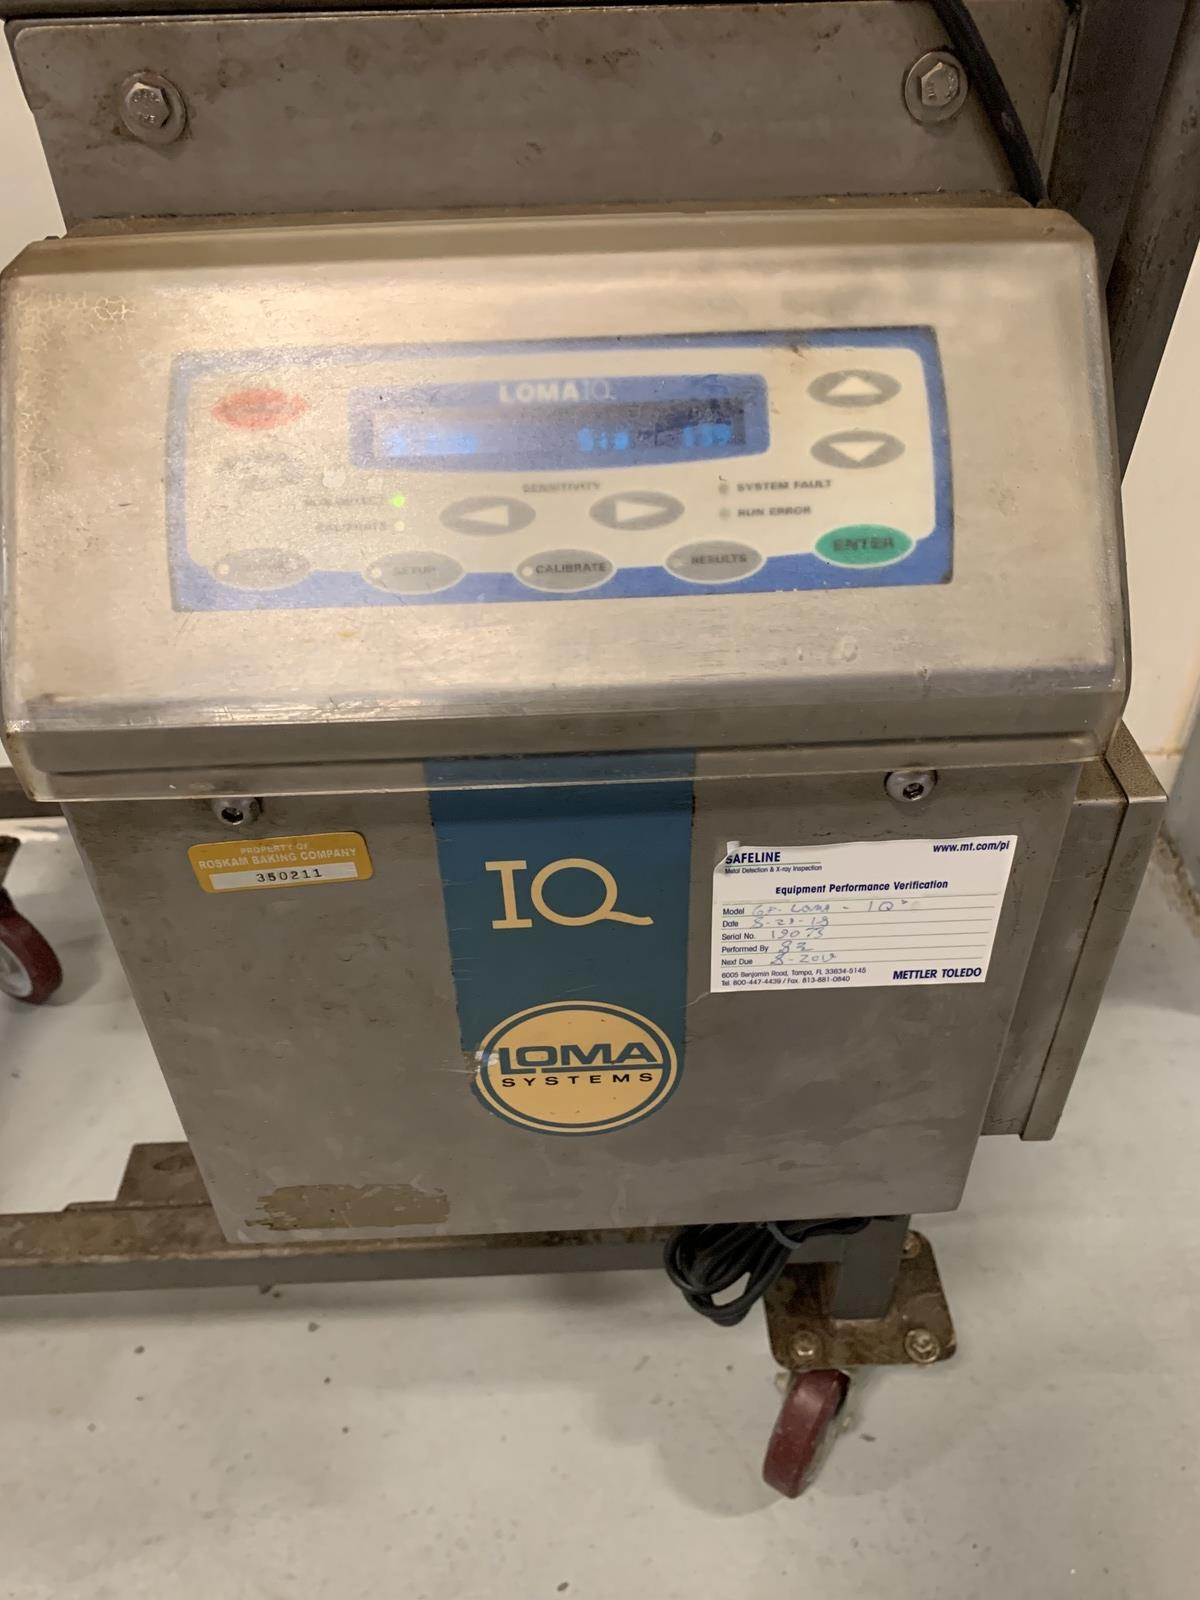 Lot 7A - Loma IQ Flow Through Metal Detector, Aperture: Approx 6.5in ID, S/N 19073 | Rig Fee: 100